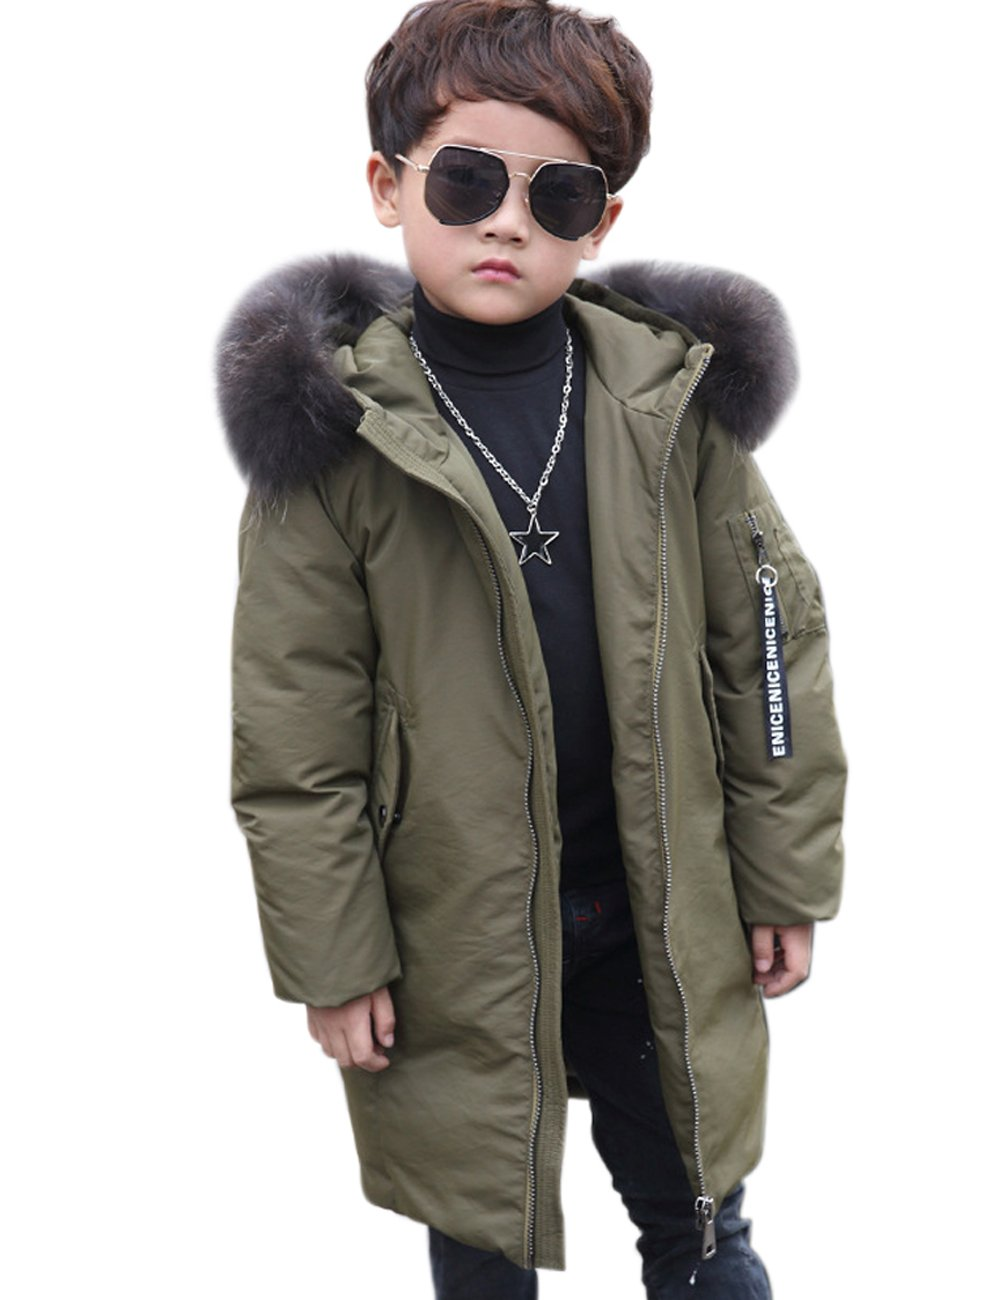 Menschwear Boy's Down Fur Hooded Jacket Winter Warm Outwear Winter Coat (150,Army-Green)